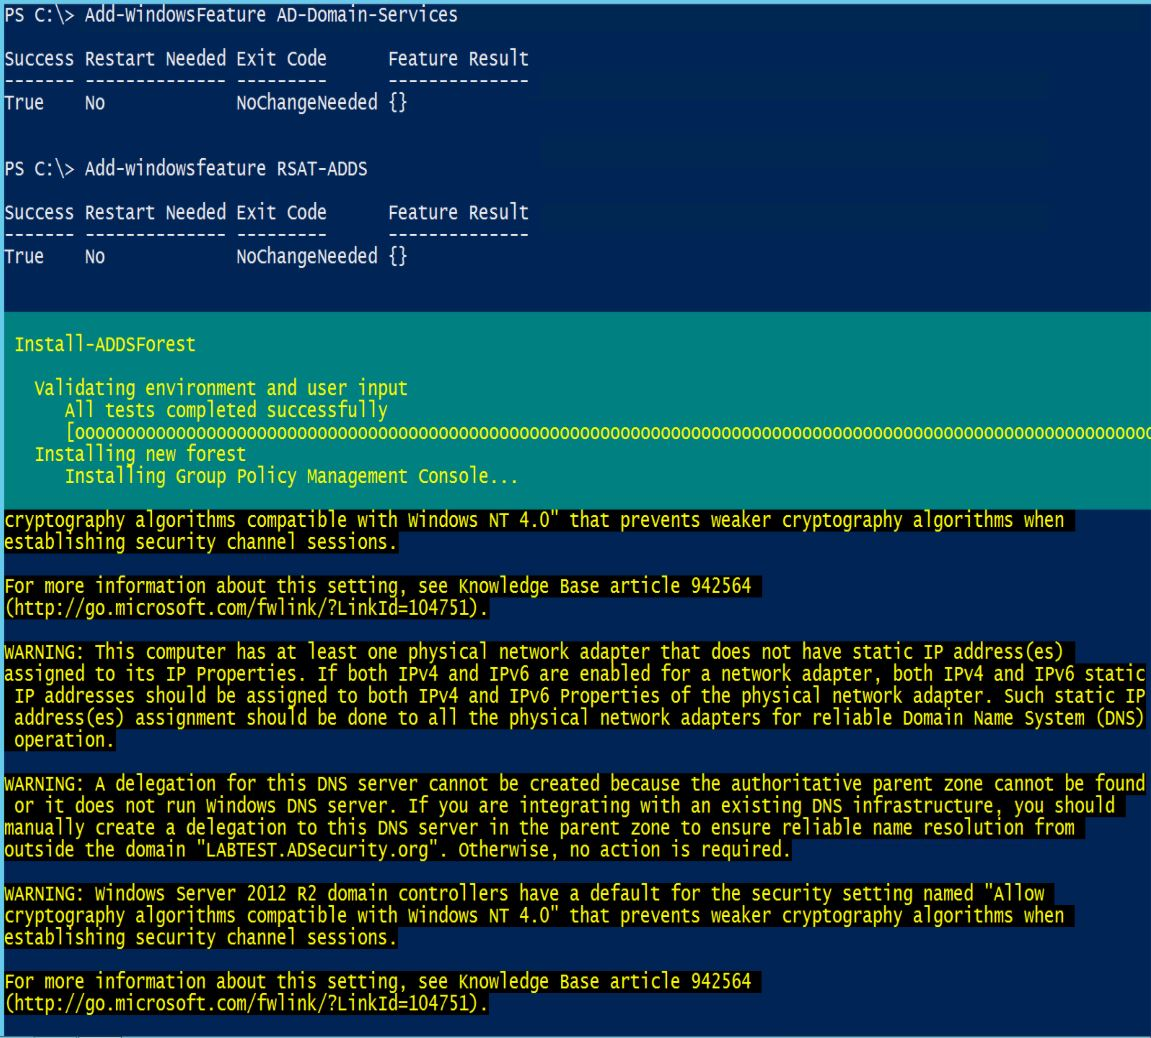 Building an Effective Active Directory Lab Environment for